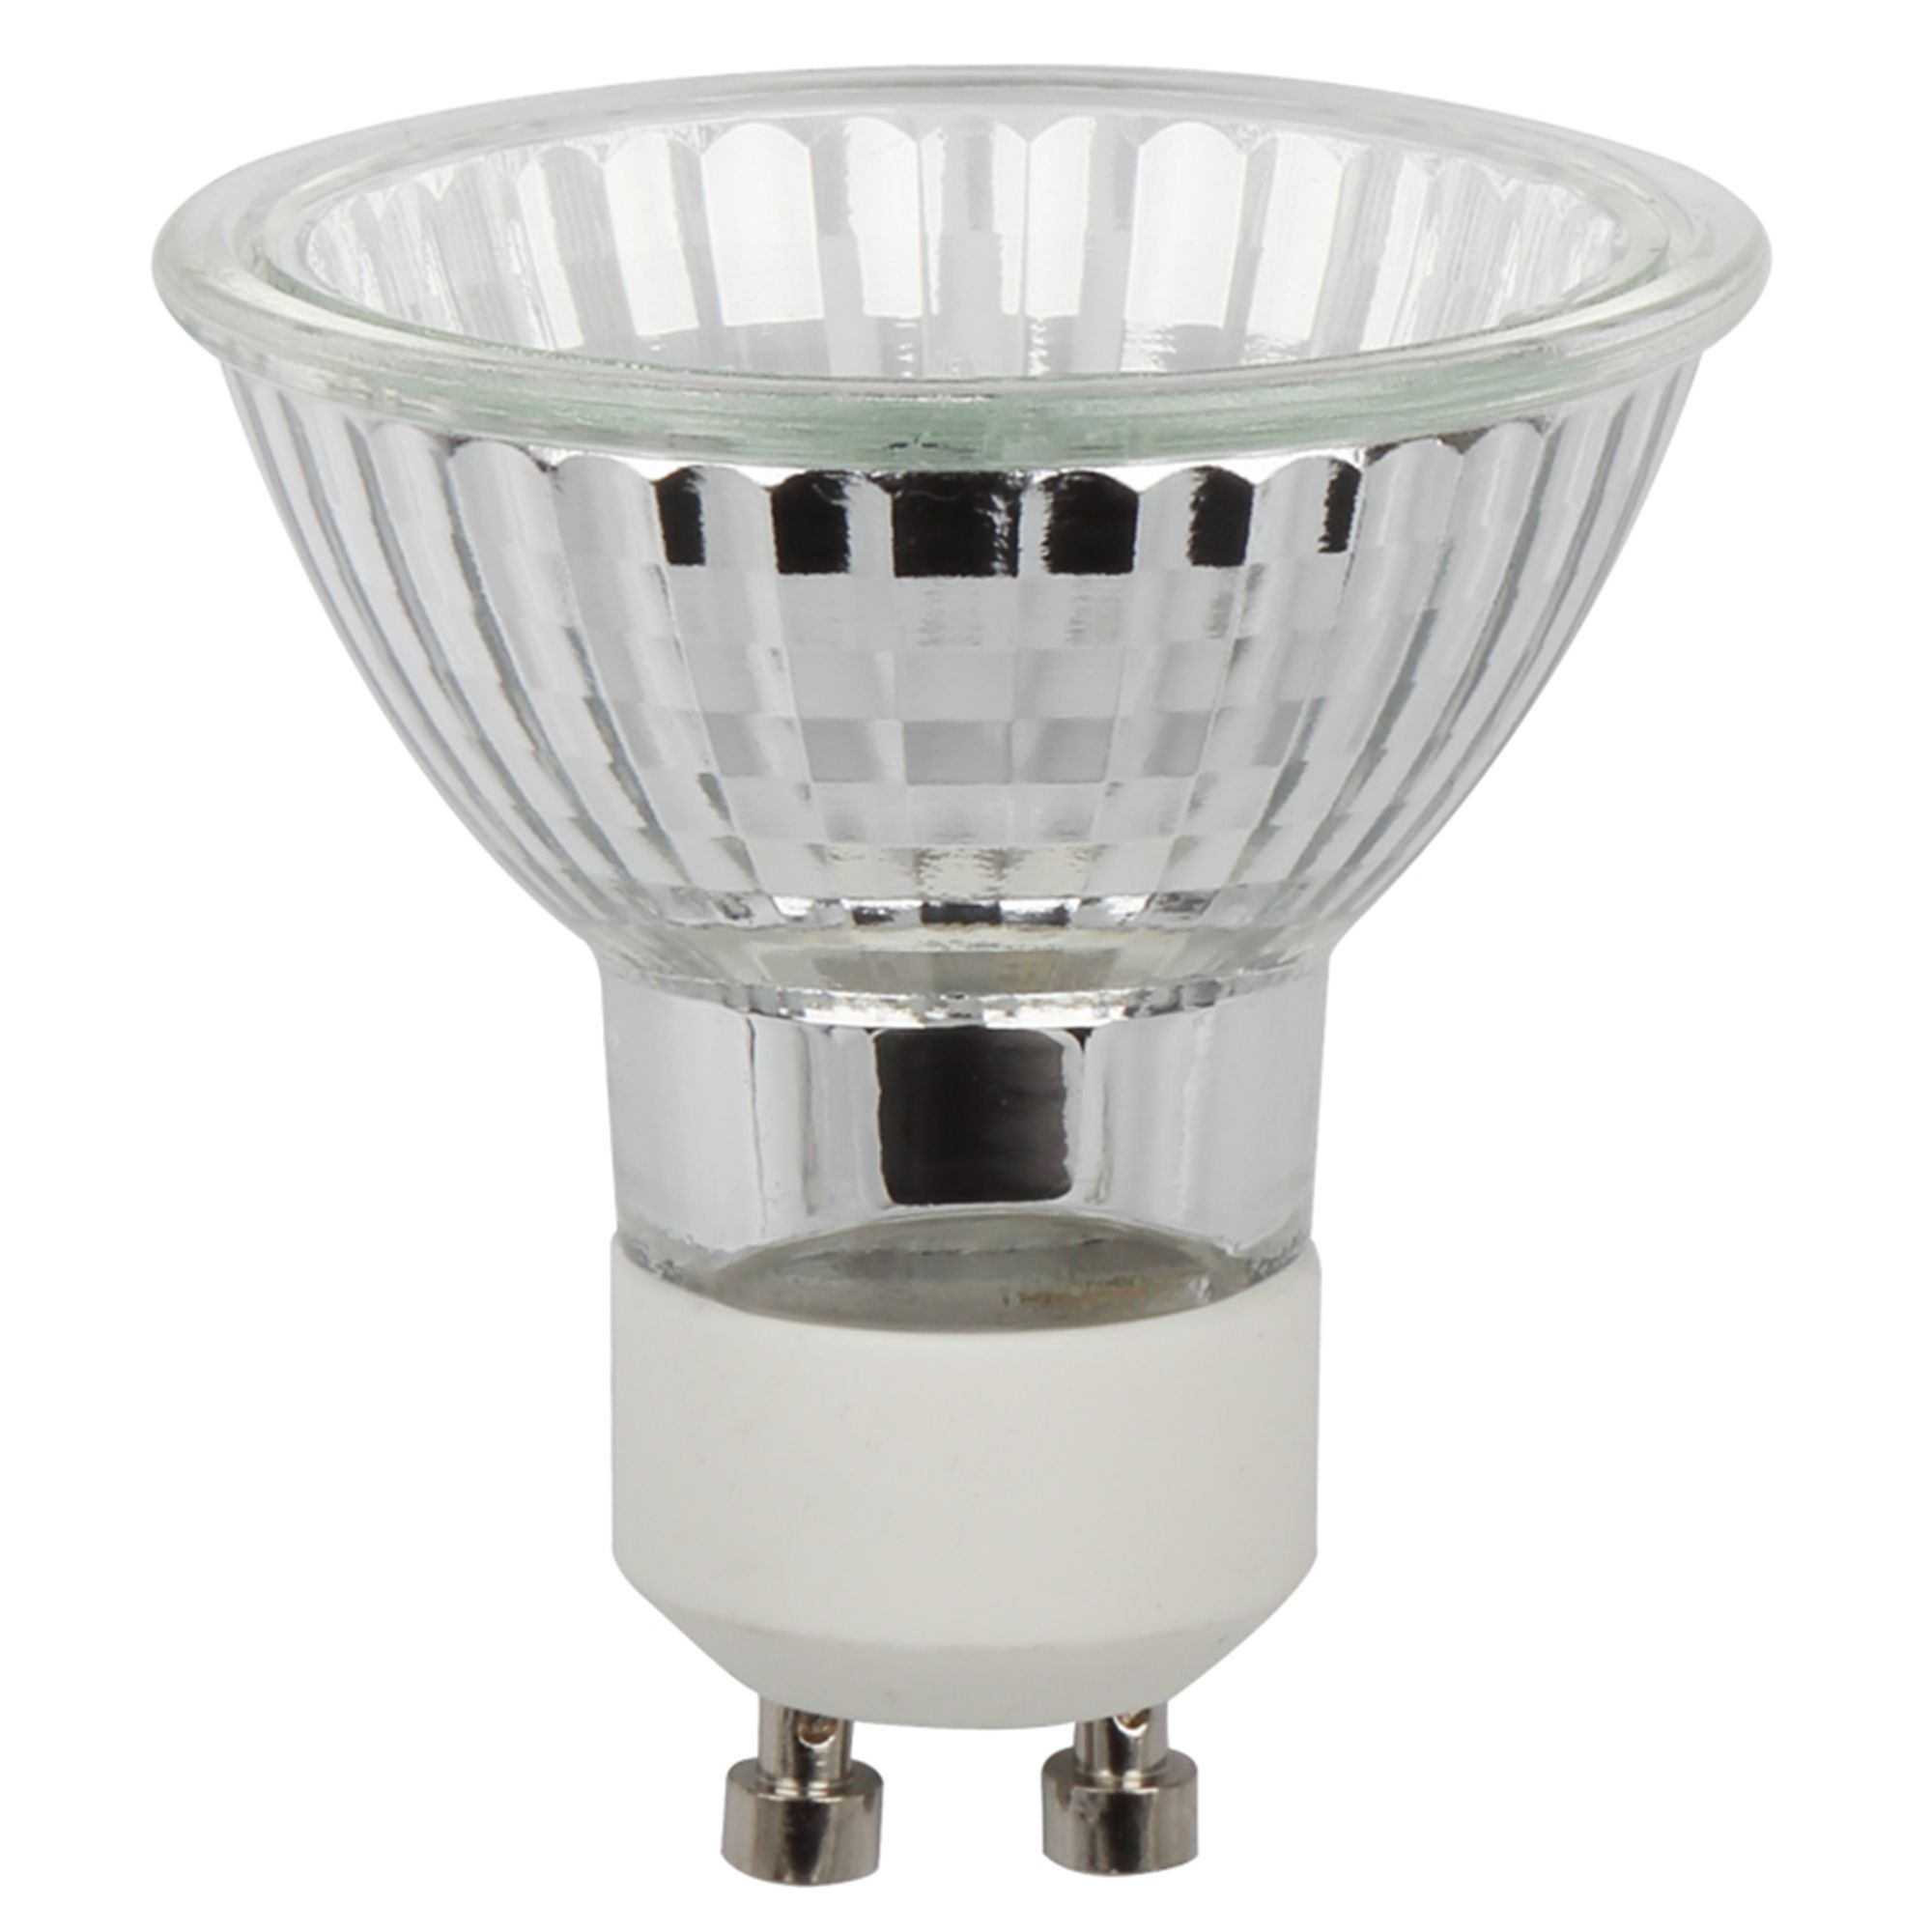 Diall Gu10 28w Halogen Eco Dimmable Reflector Spot Light Bulb Pack Of 8 Departments Diy At B Q